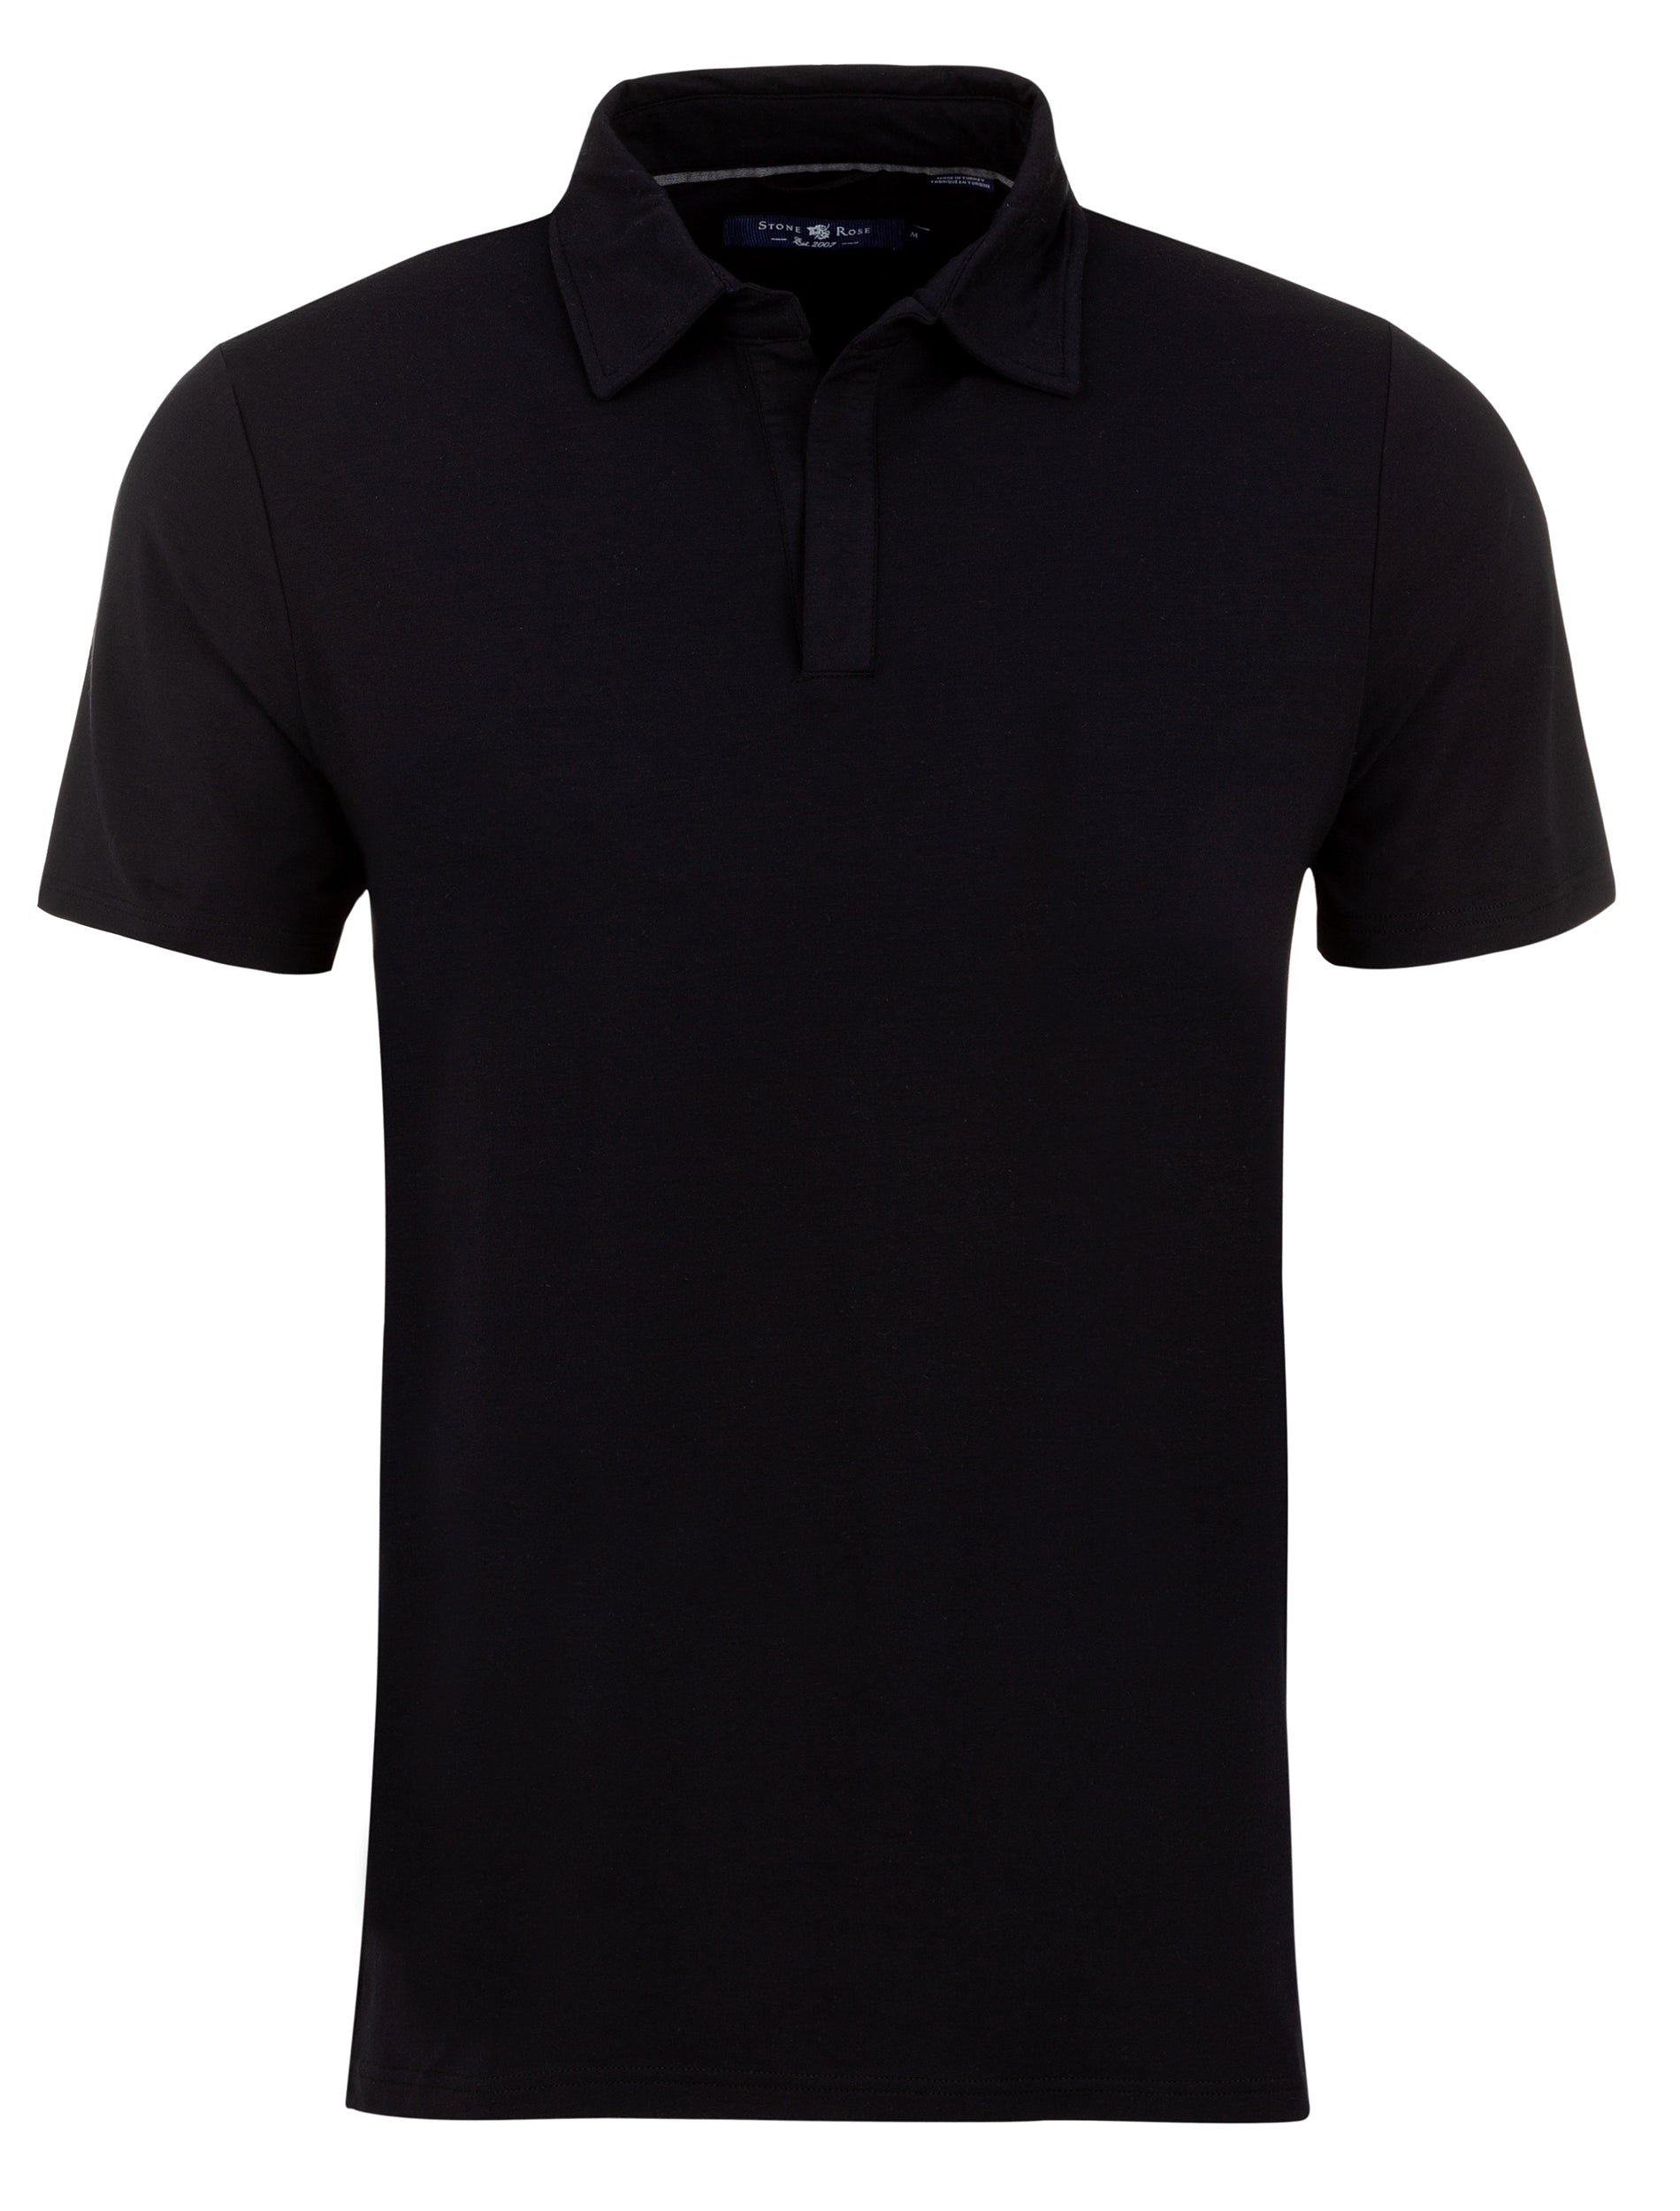 Black Micro Modal Jersey Button-less Polo